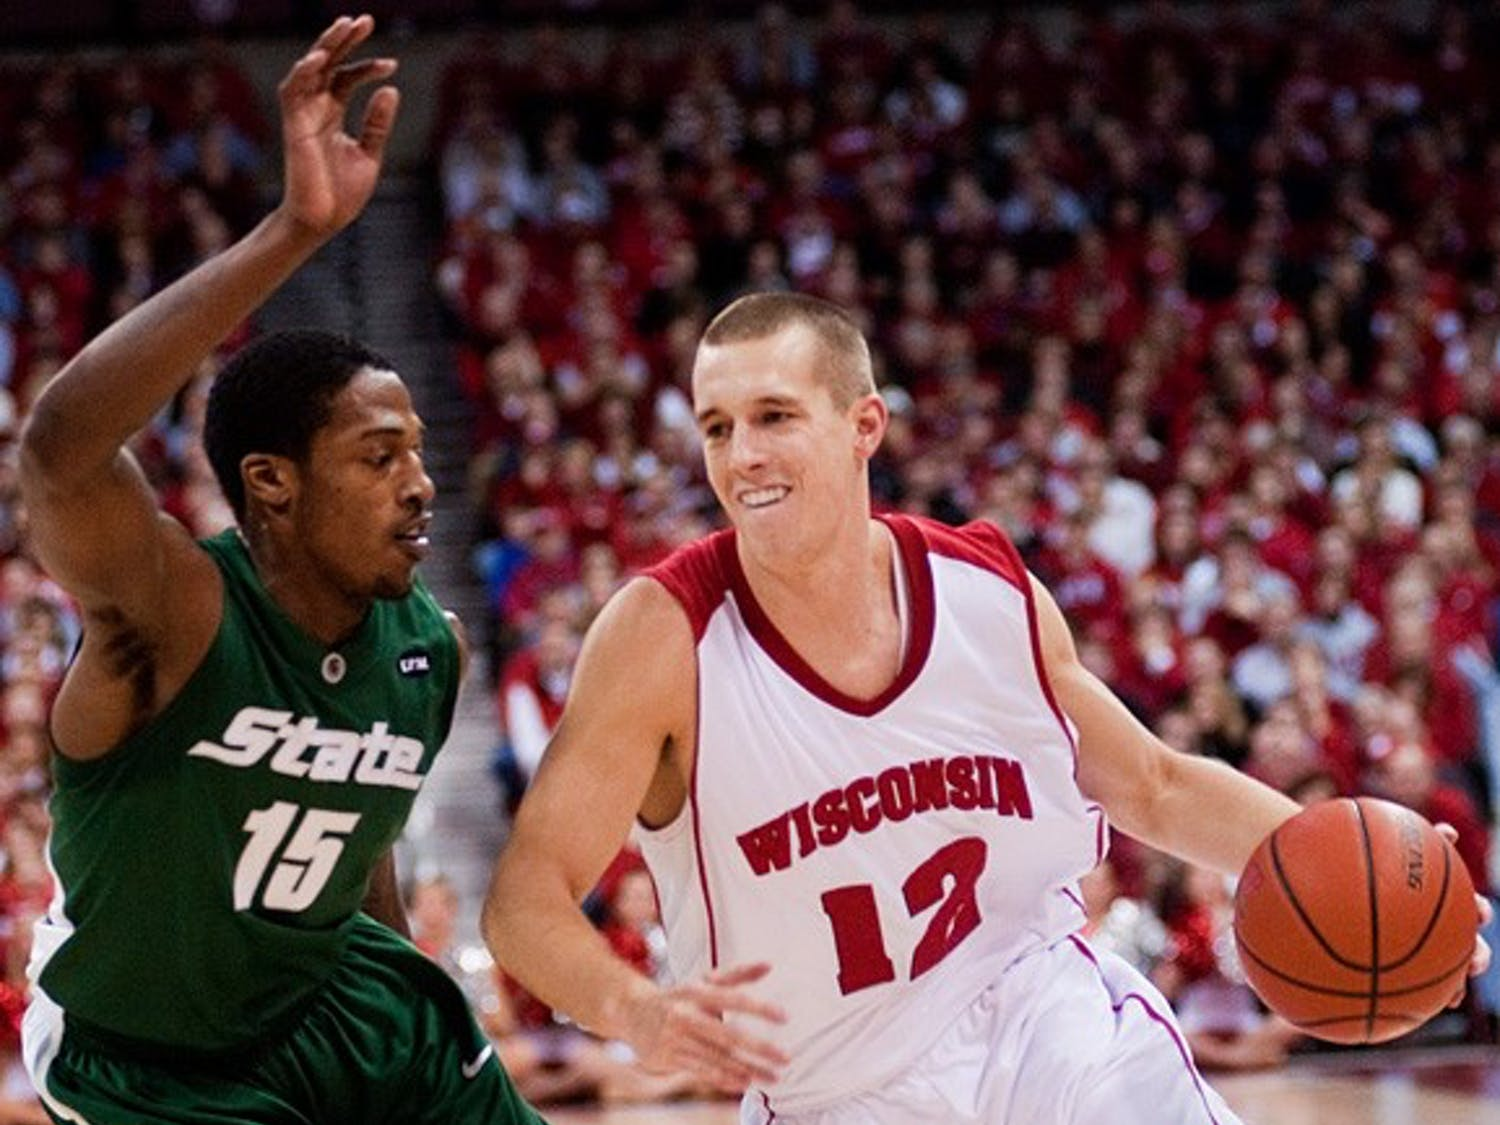 UW looks to avoid slow start in road rematch with Michigan